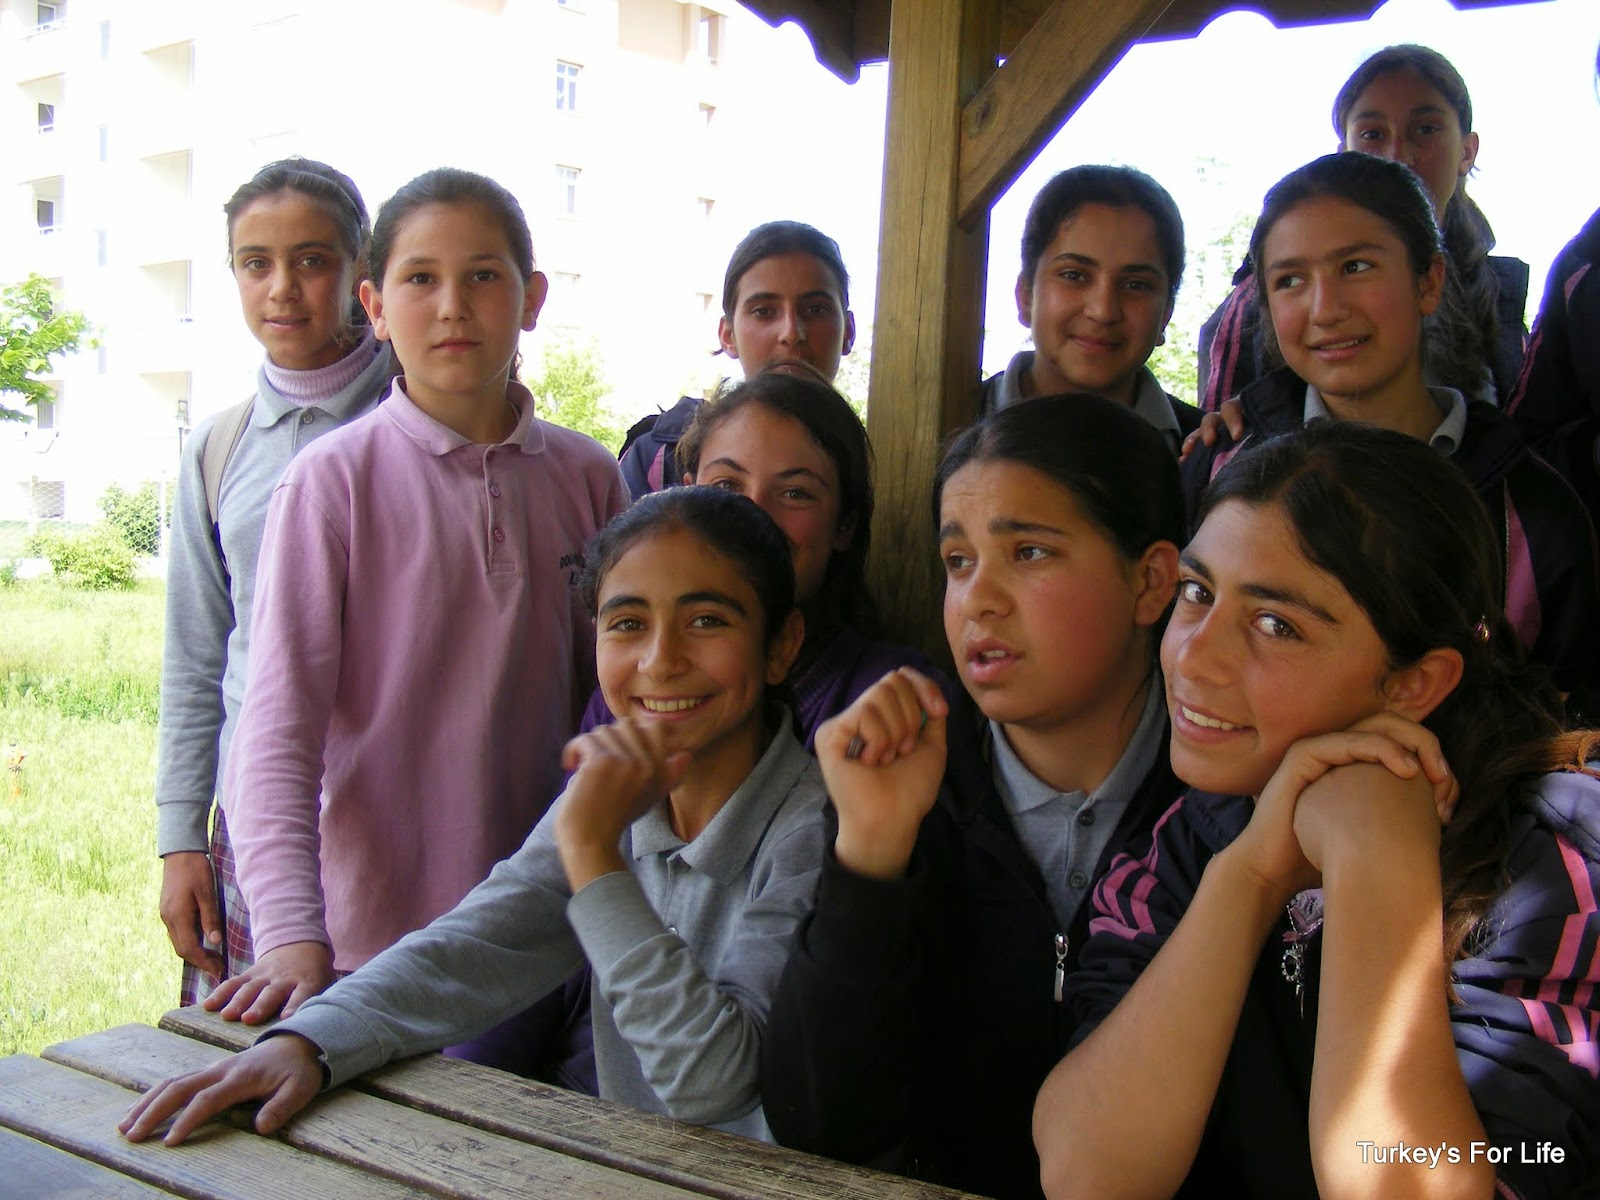 School Children In Doğansu, Ağrı, East Turkey